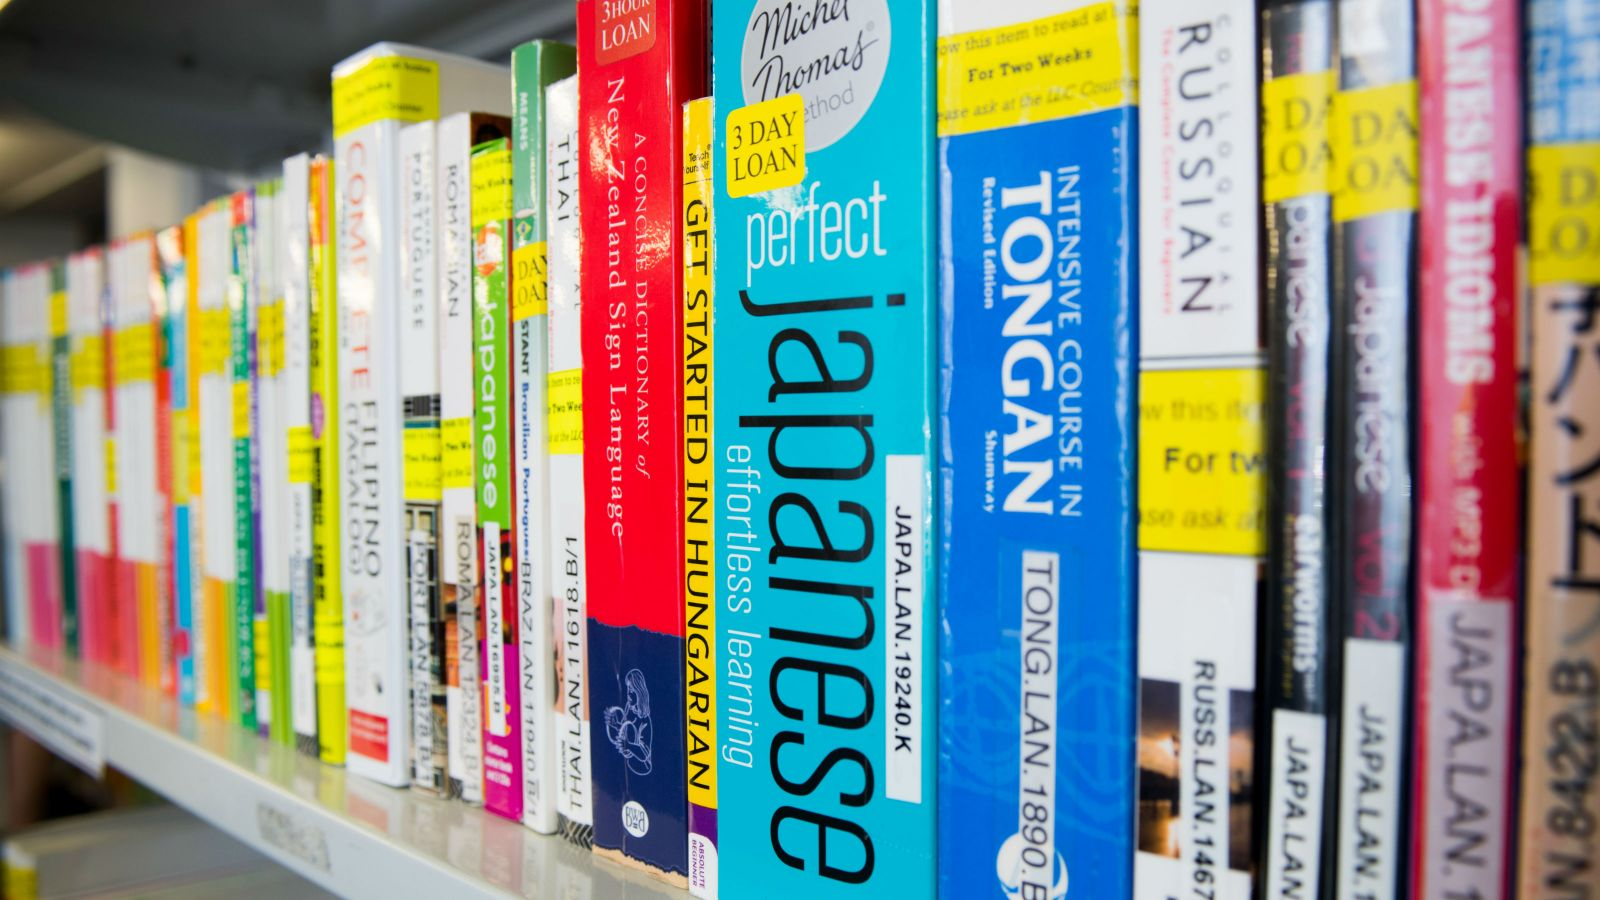 The spines of many language books on a shelf.